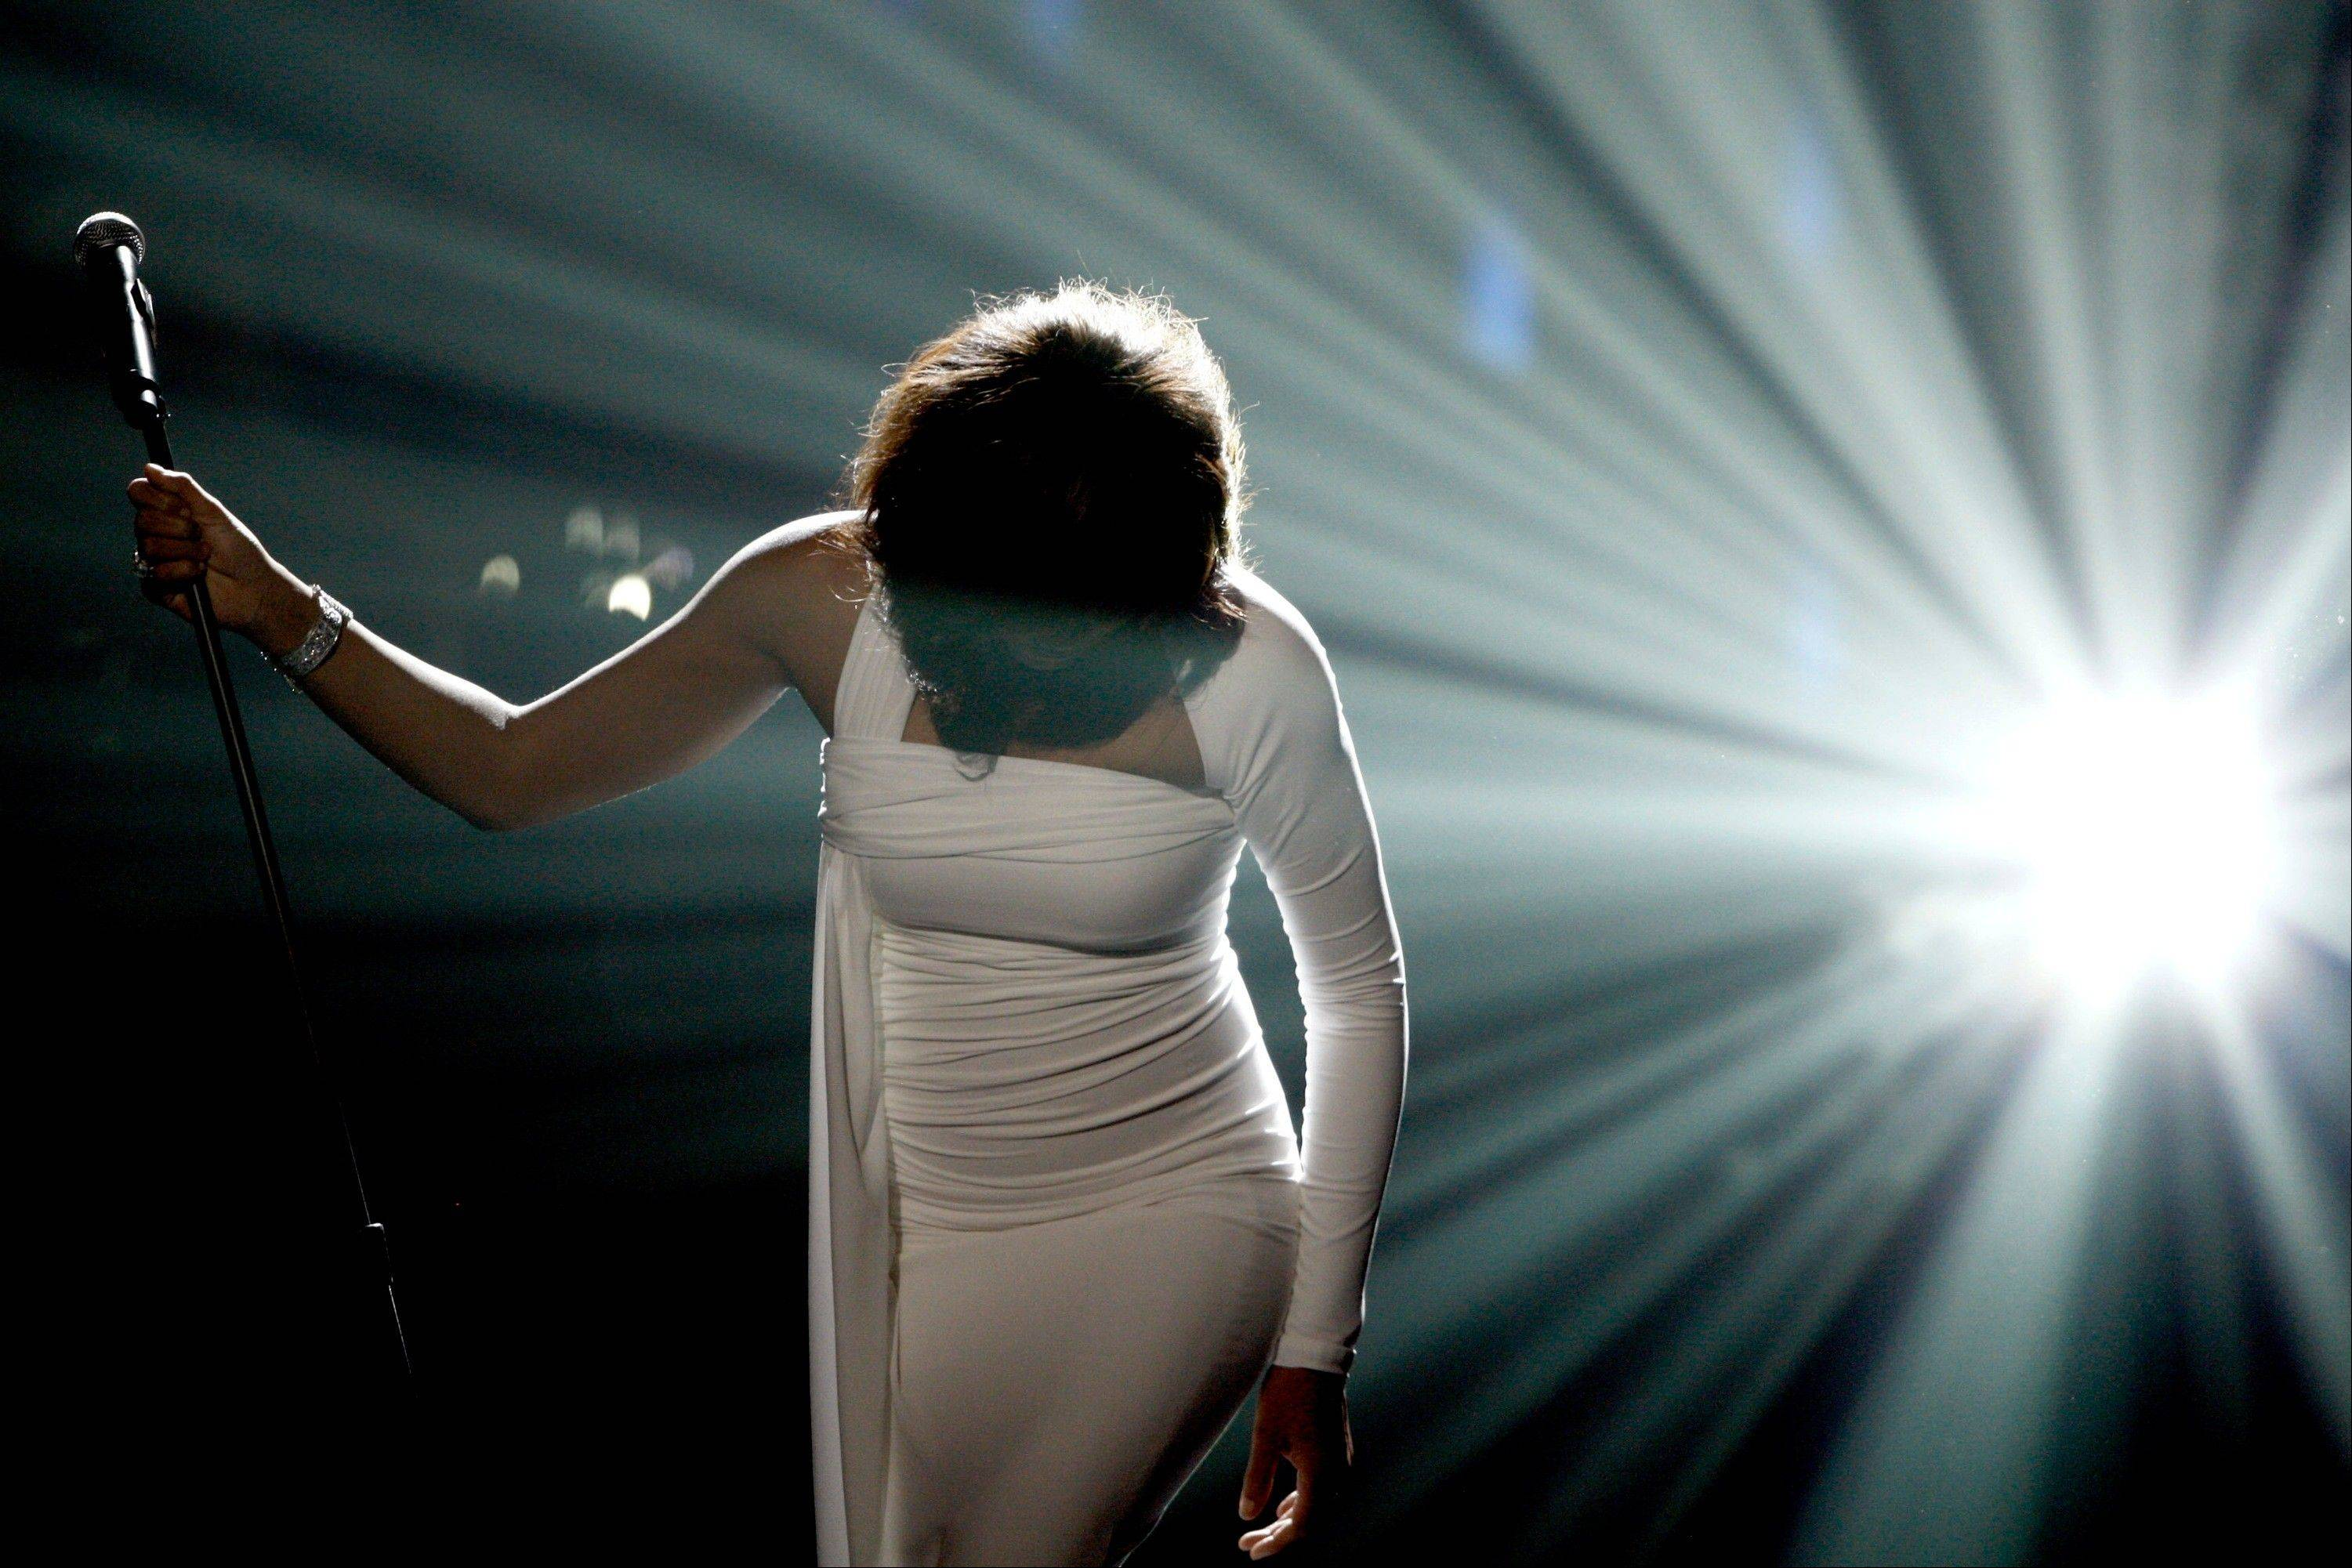 Whitney Houston's voice will never be forgotten